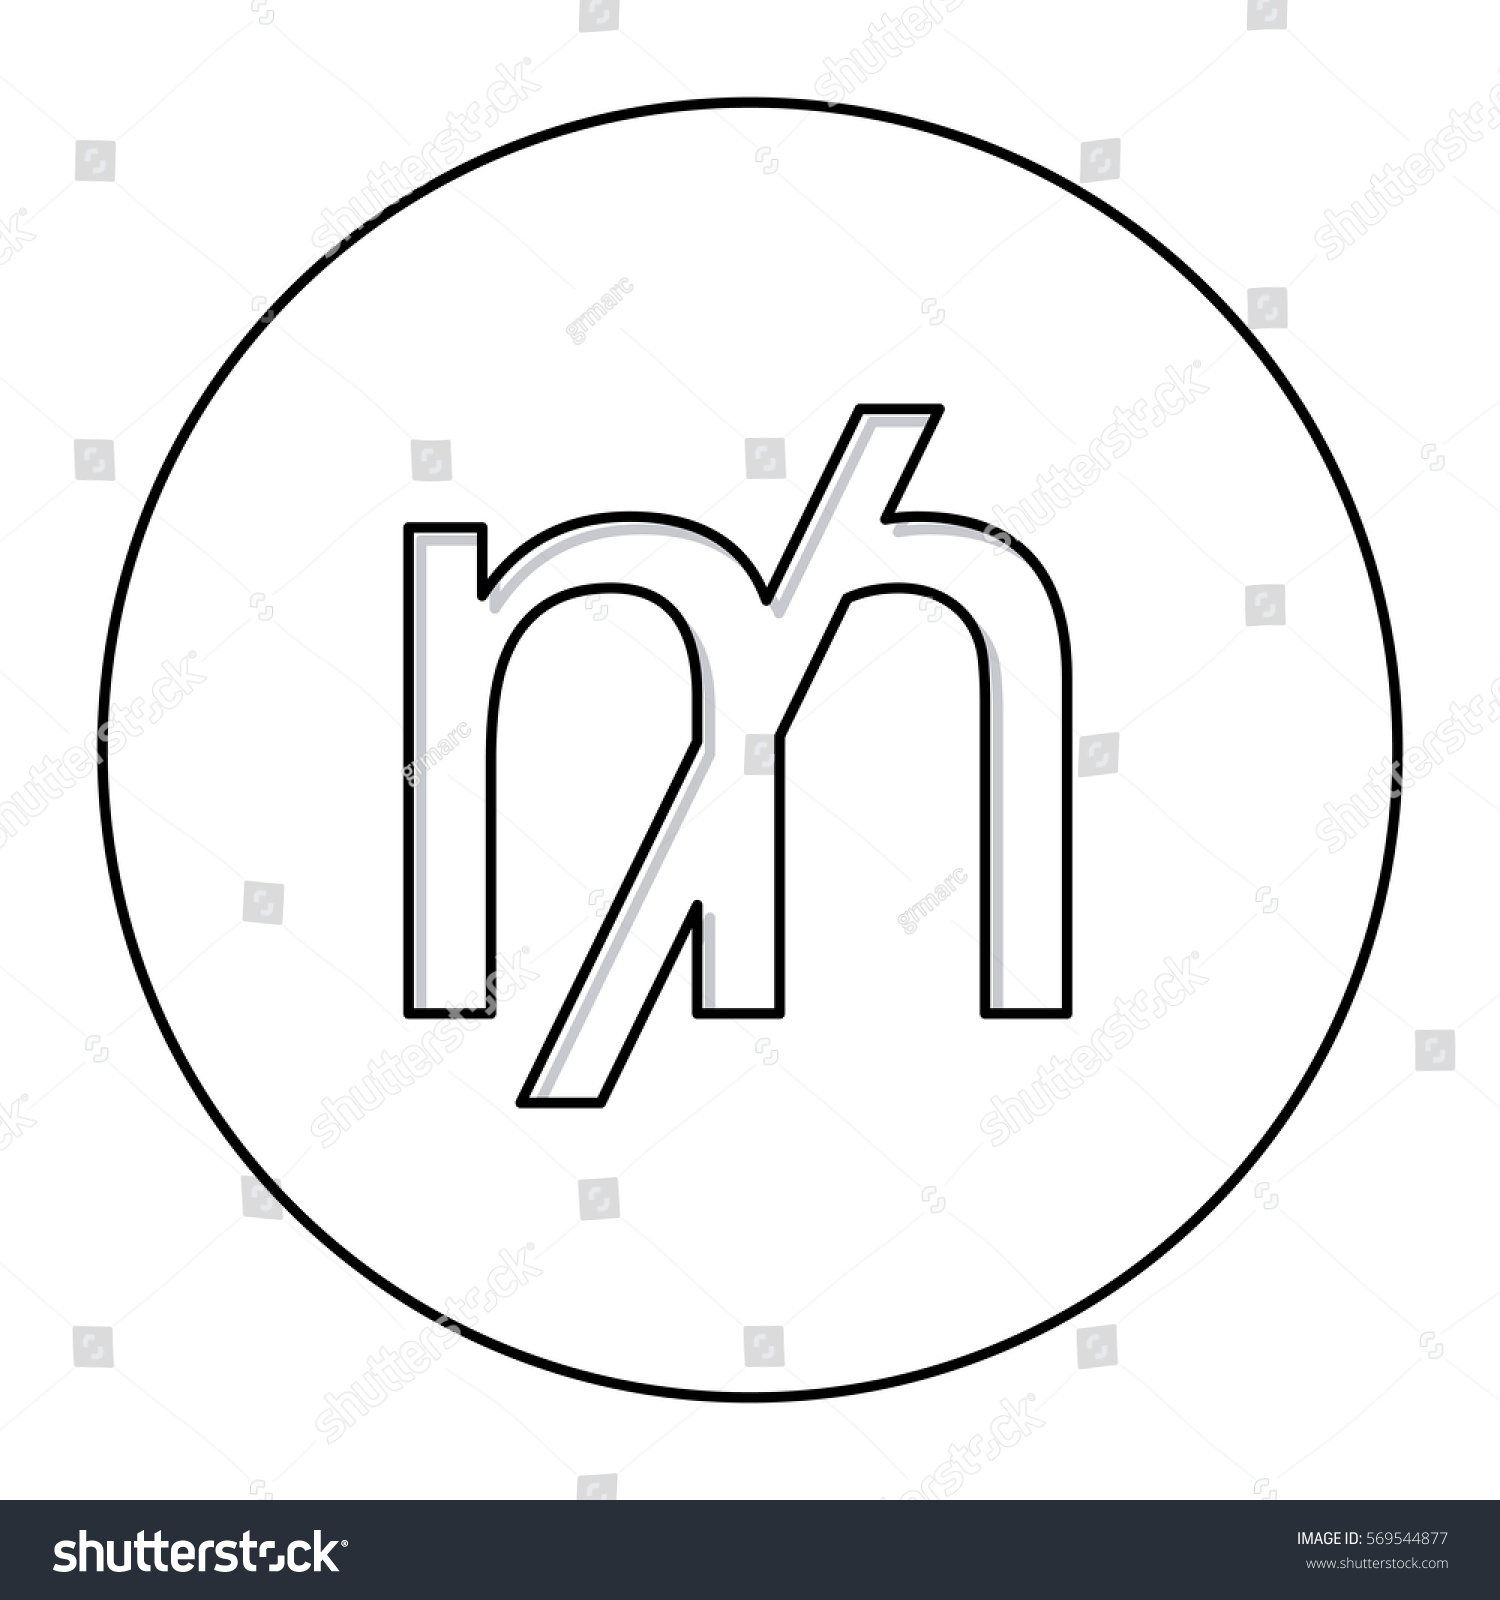 Monochrome contour currency symbol mill circle stock vector monochrome contour with currency symbol of mill in circle buycottarizona Gallery